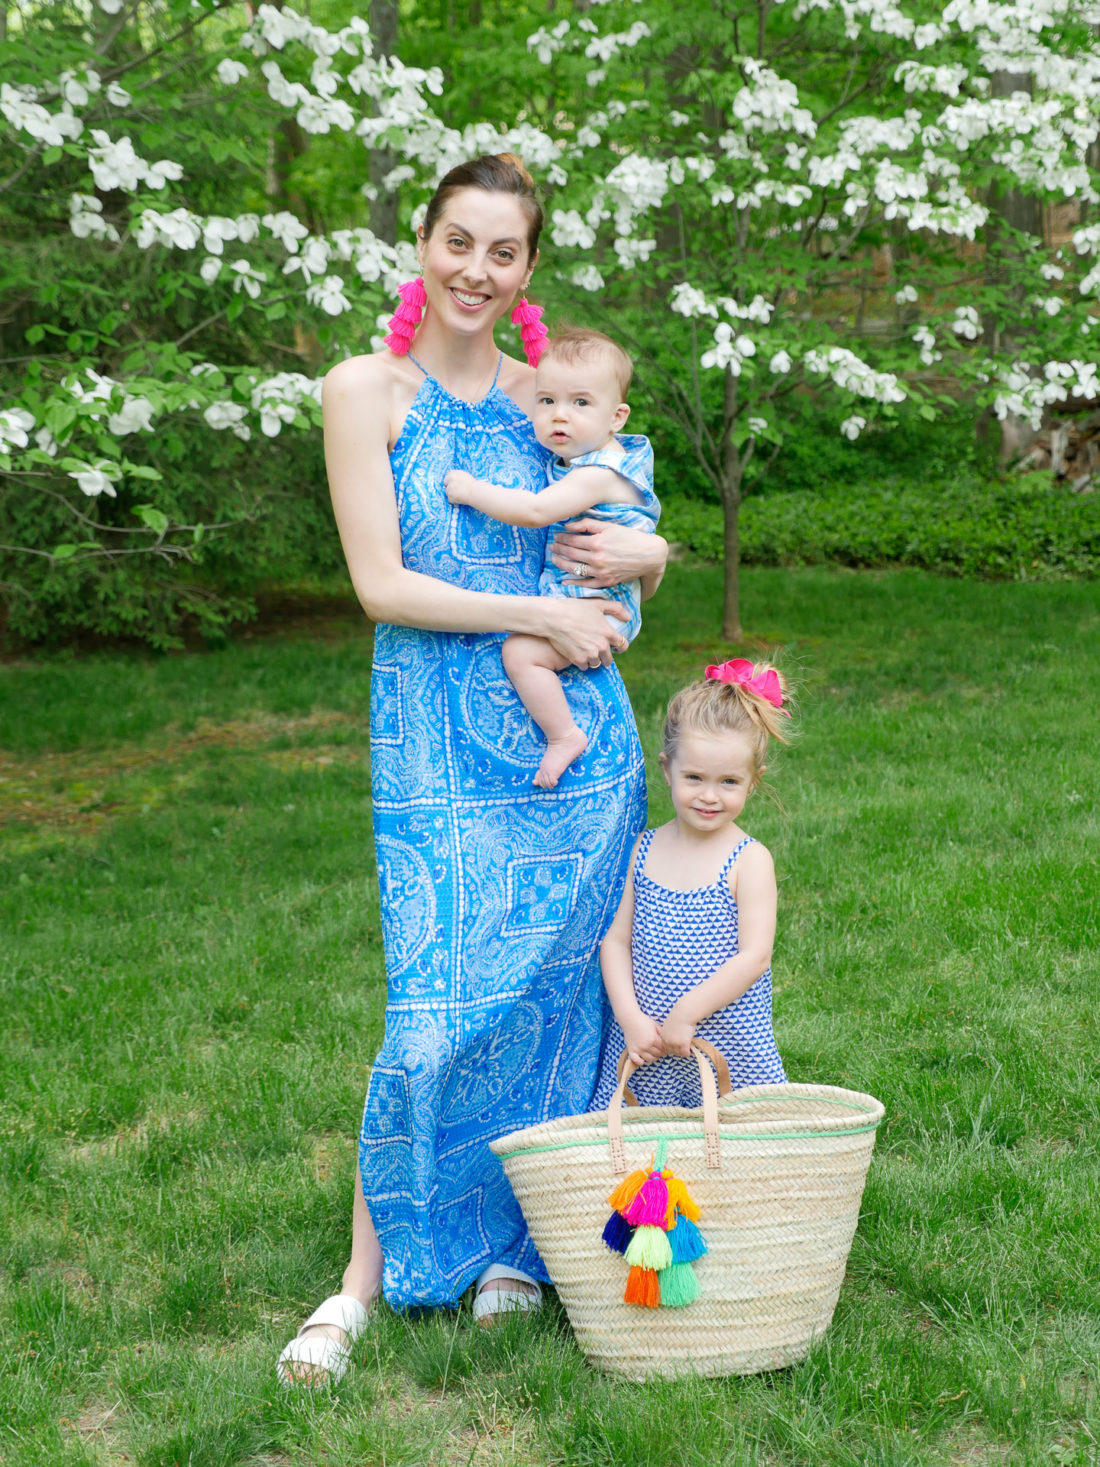 Eva Amurri Martino stands with her children in the countryside wearing a blue maxi dress and magenta tassel earrings